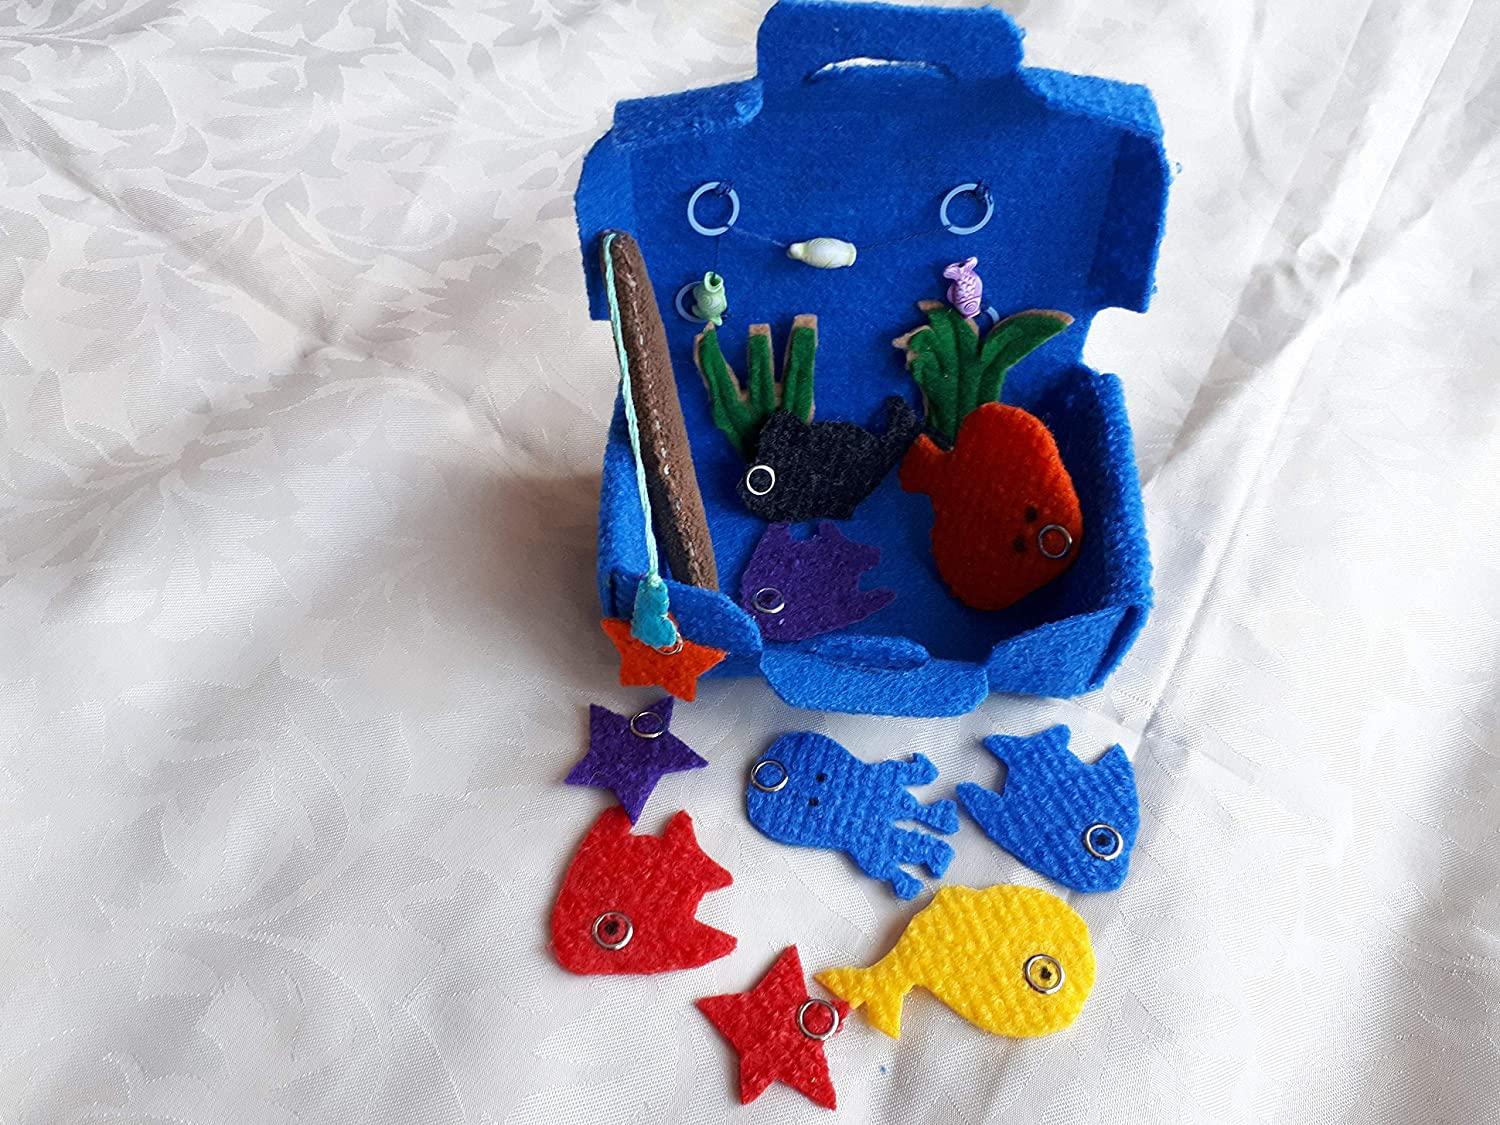 toddler game,travell toy silent toy magnetic fishing game Quiet book childrens fishing fishing in a suitcase game for travel